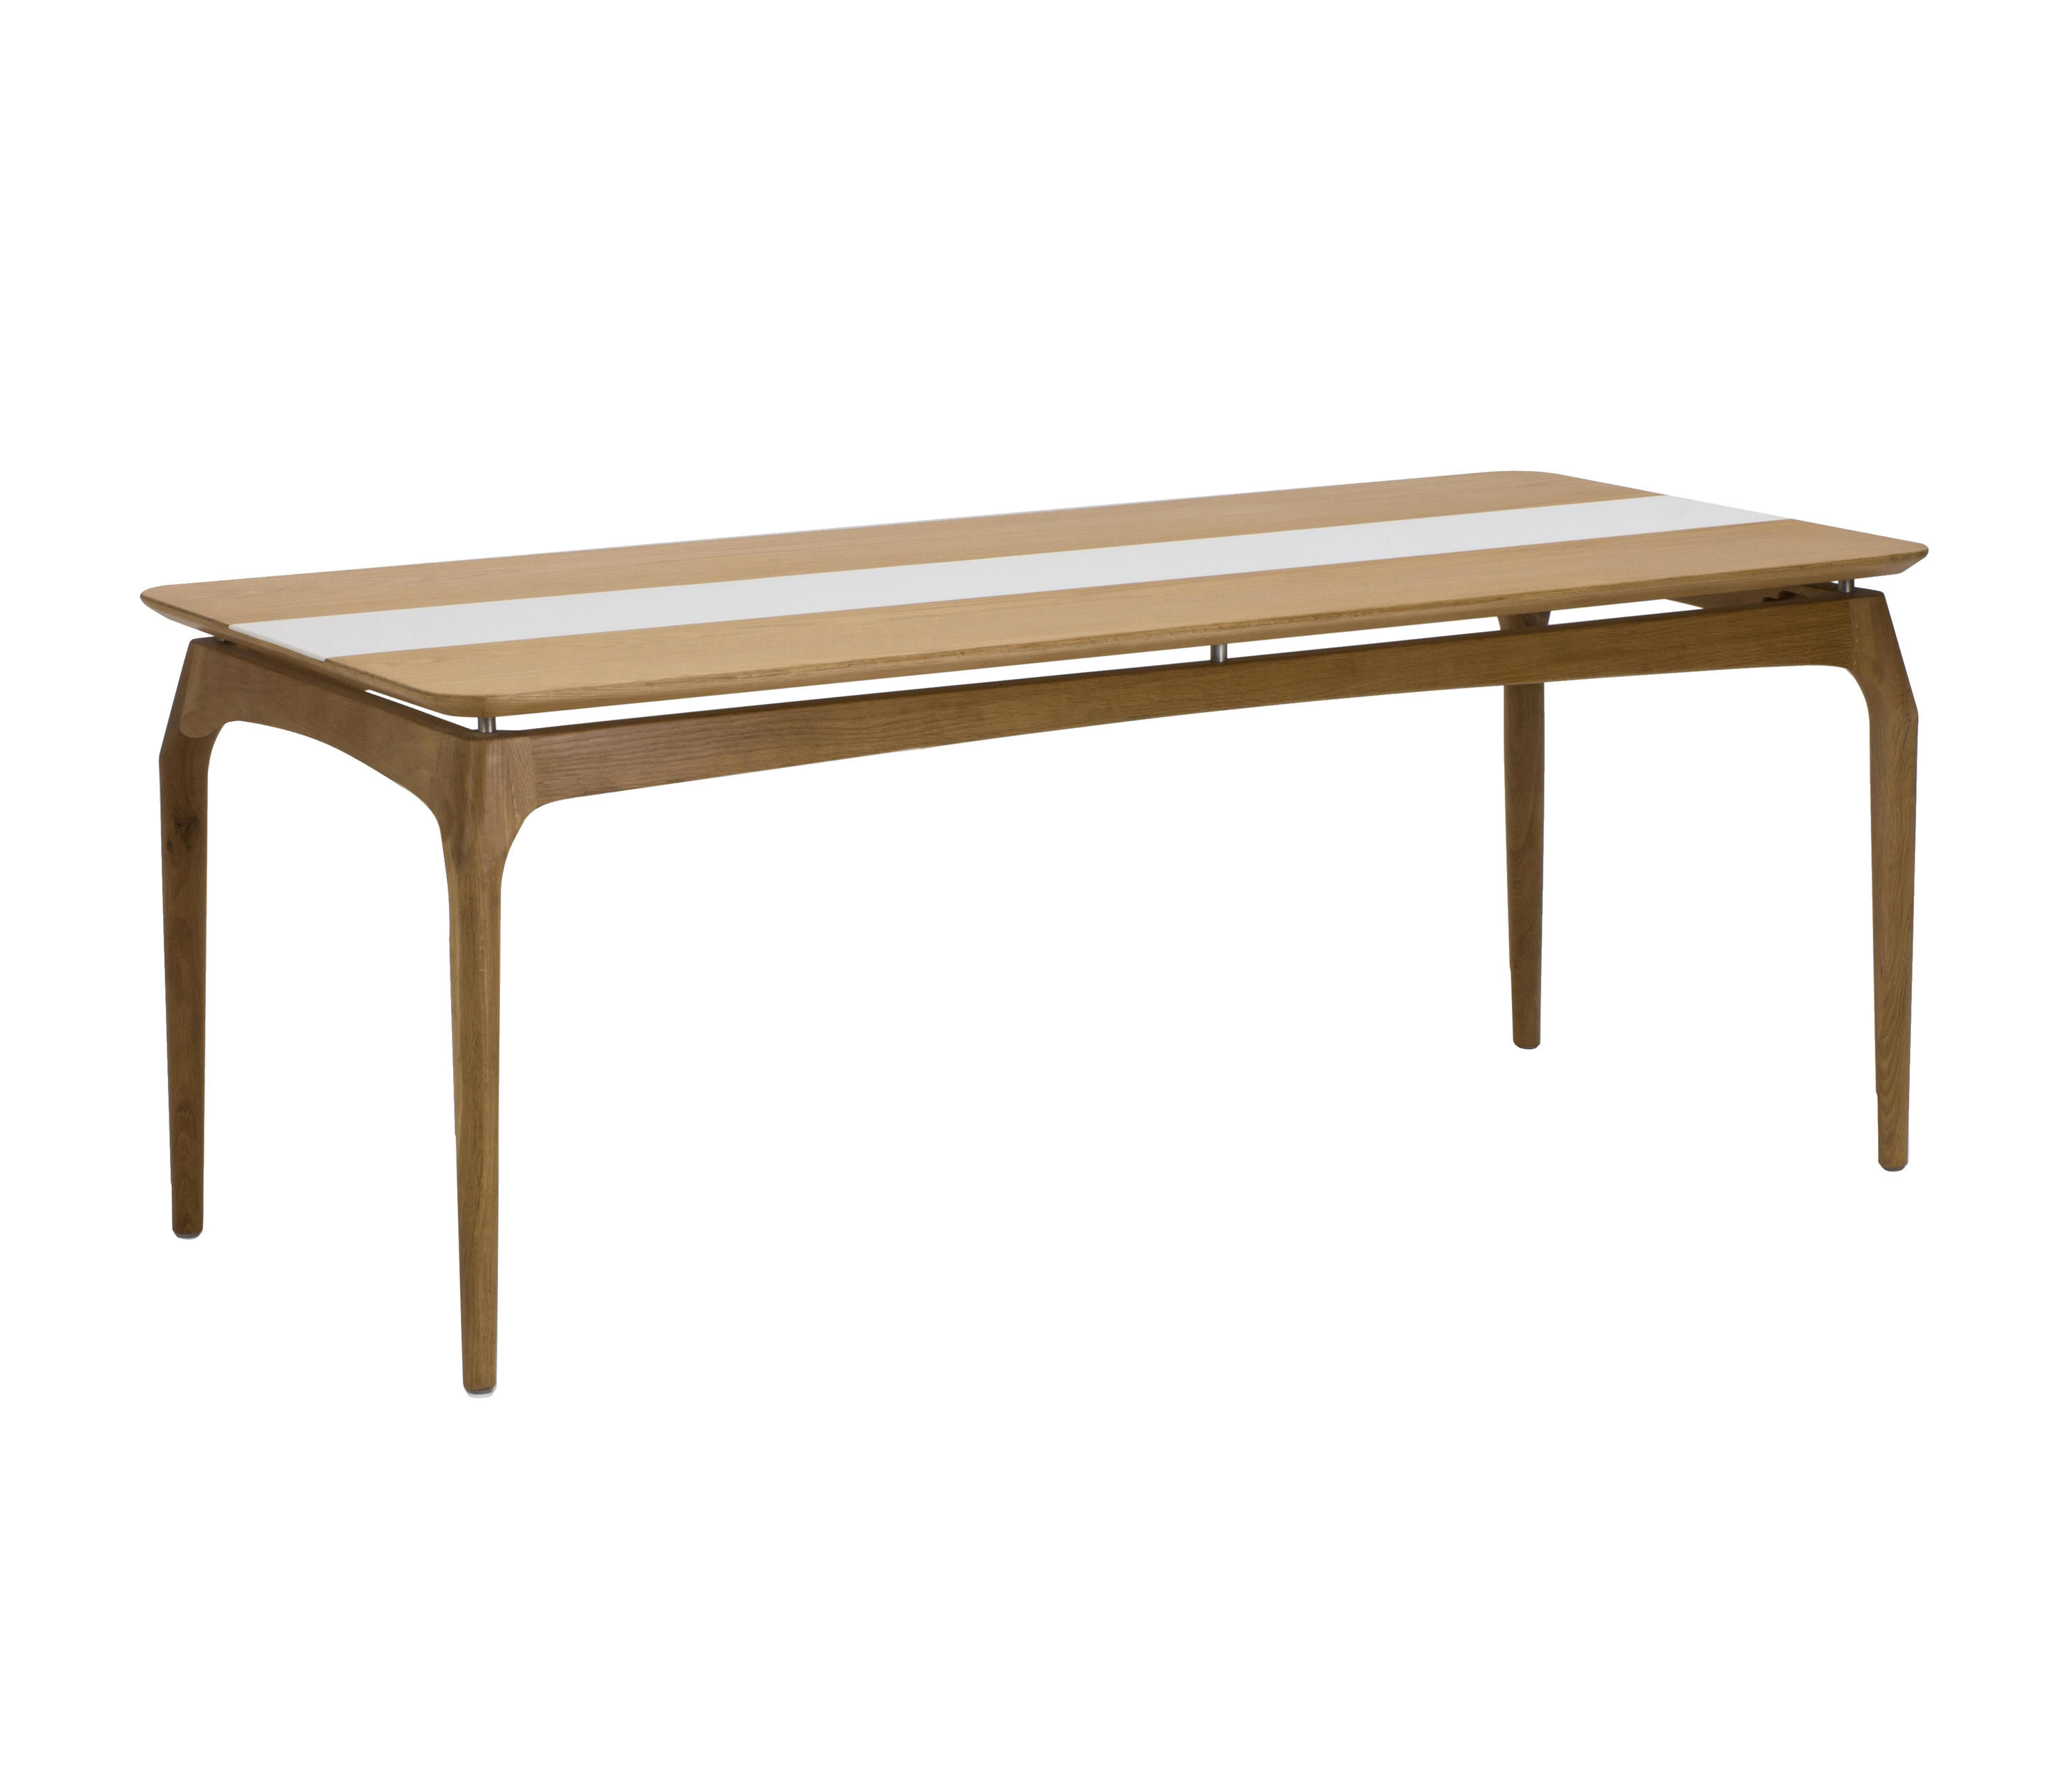 Dining Table Height Cm Dining Table 190 Cm Oak Top And Corian Dining Tables